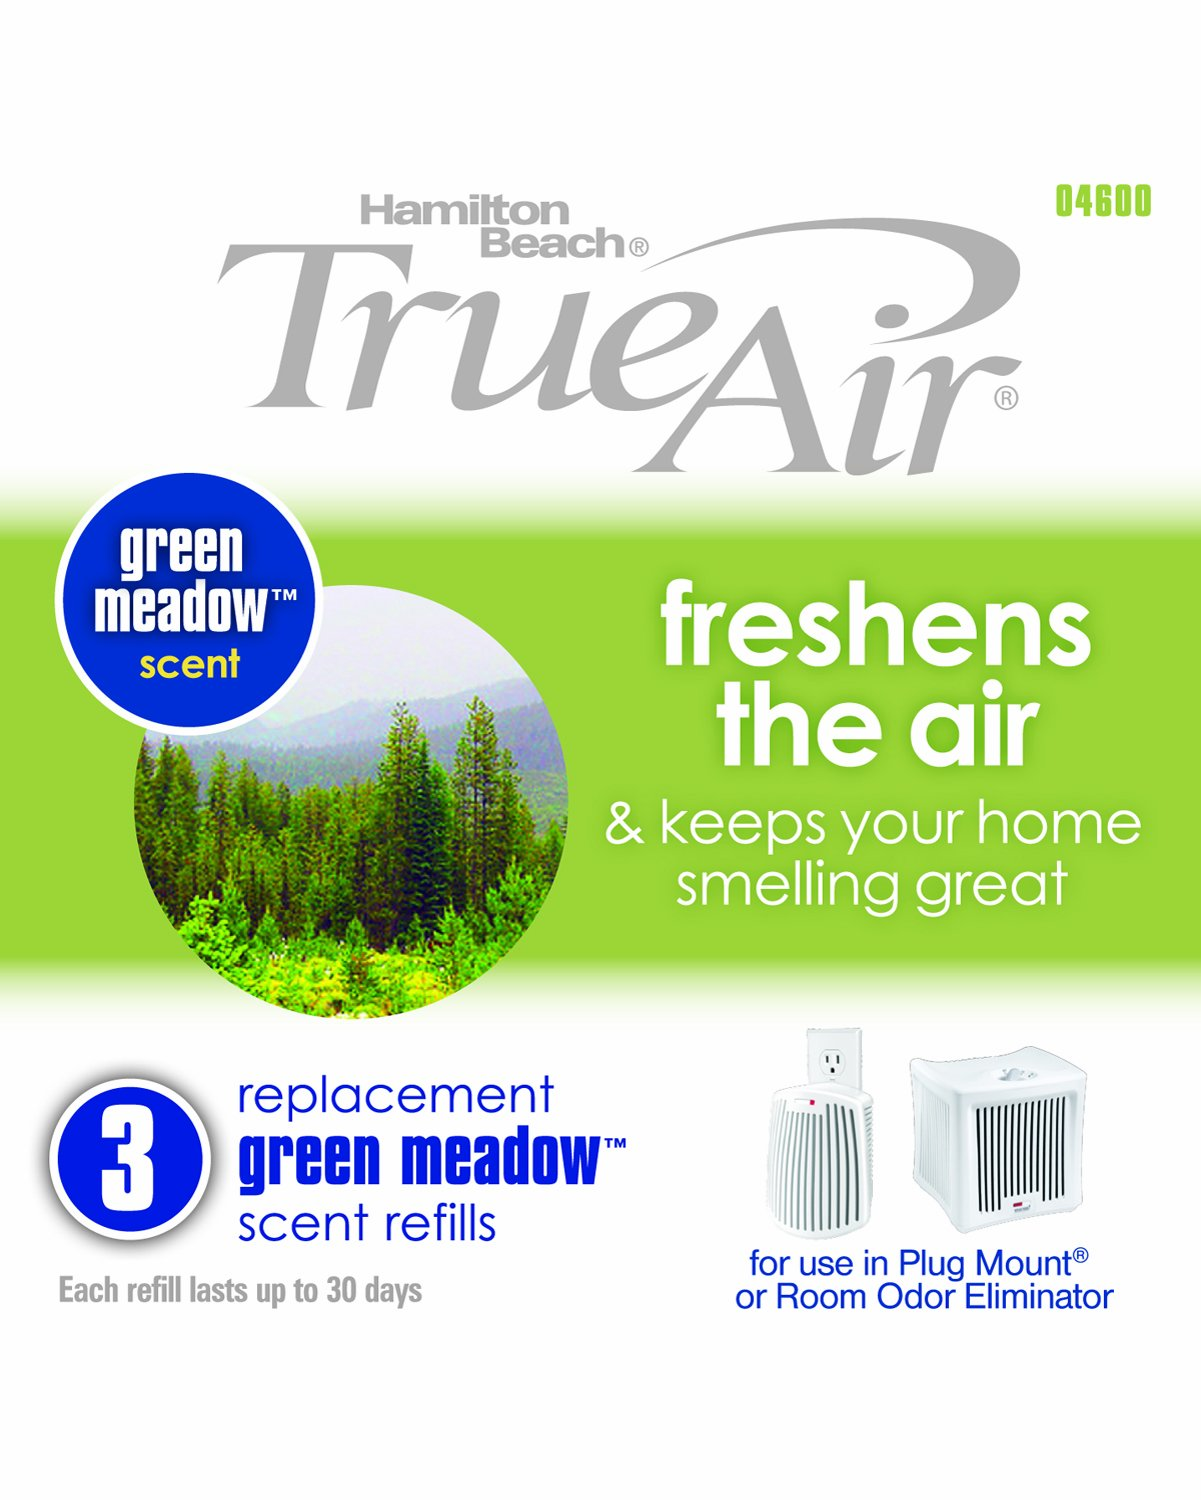 Amazon.com: Hamilton Beach Replacement Green Meadow Scent Refills for  TrueAir Plug Mount 04531GM and Odor Eliminator 04532GM (04600): Home &  Kitchen